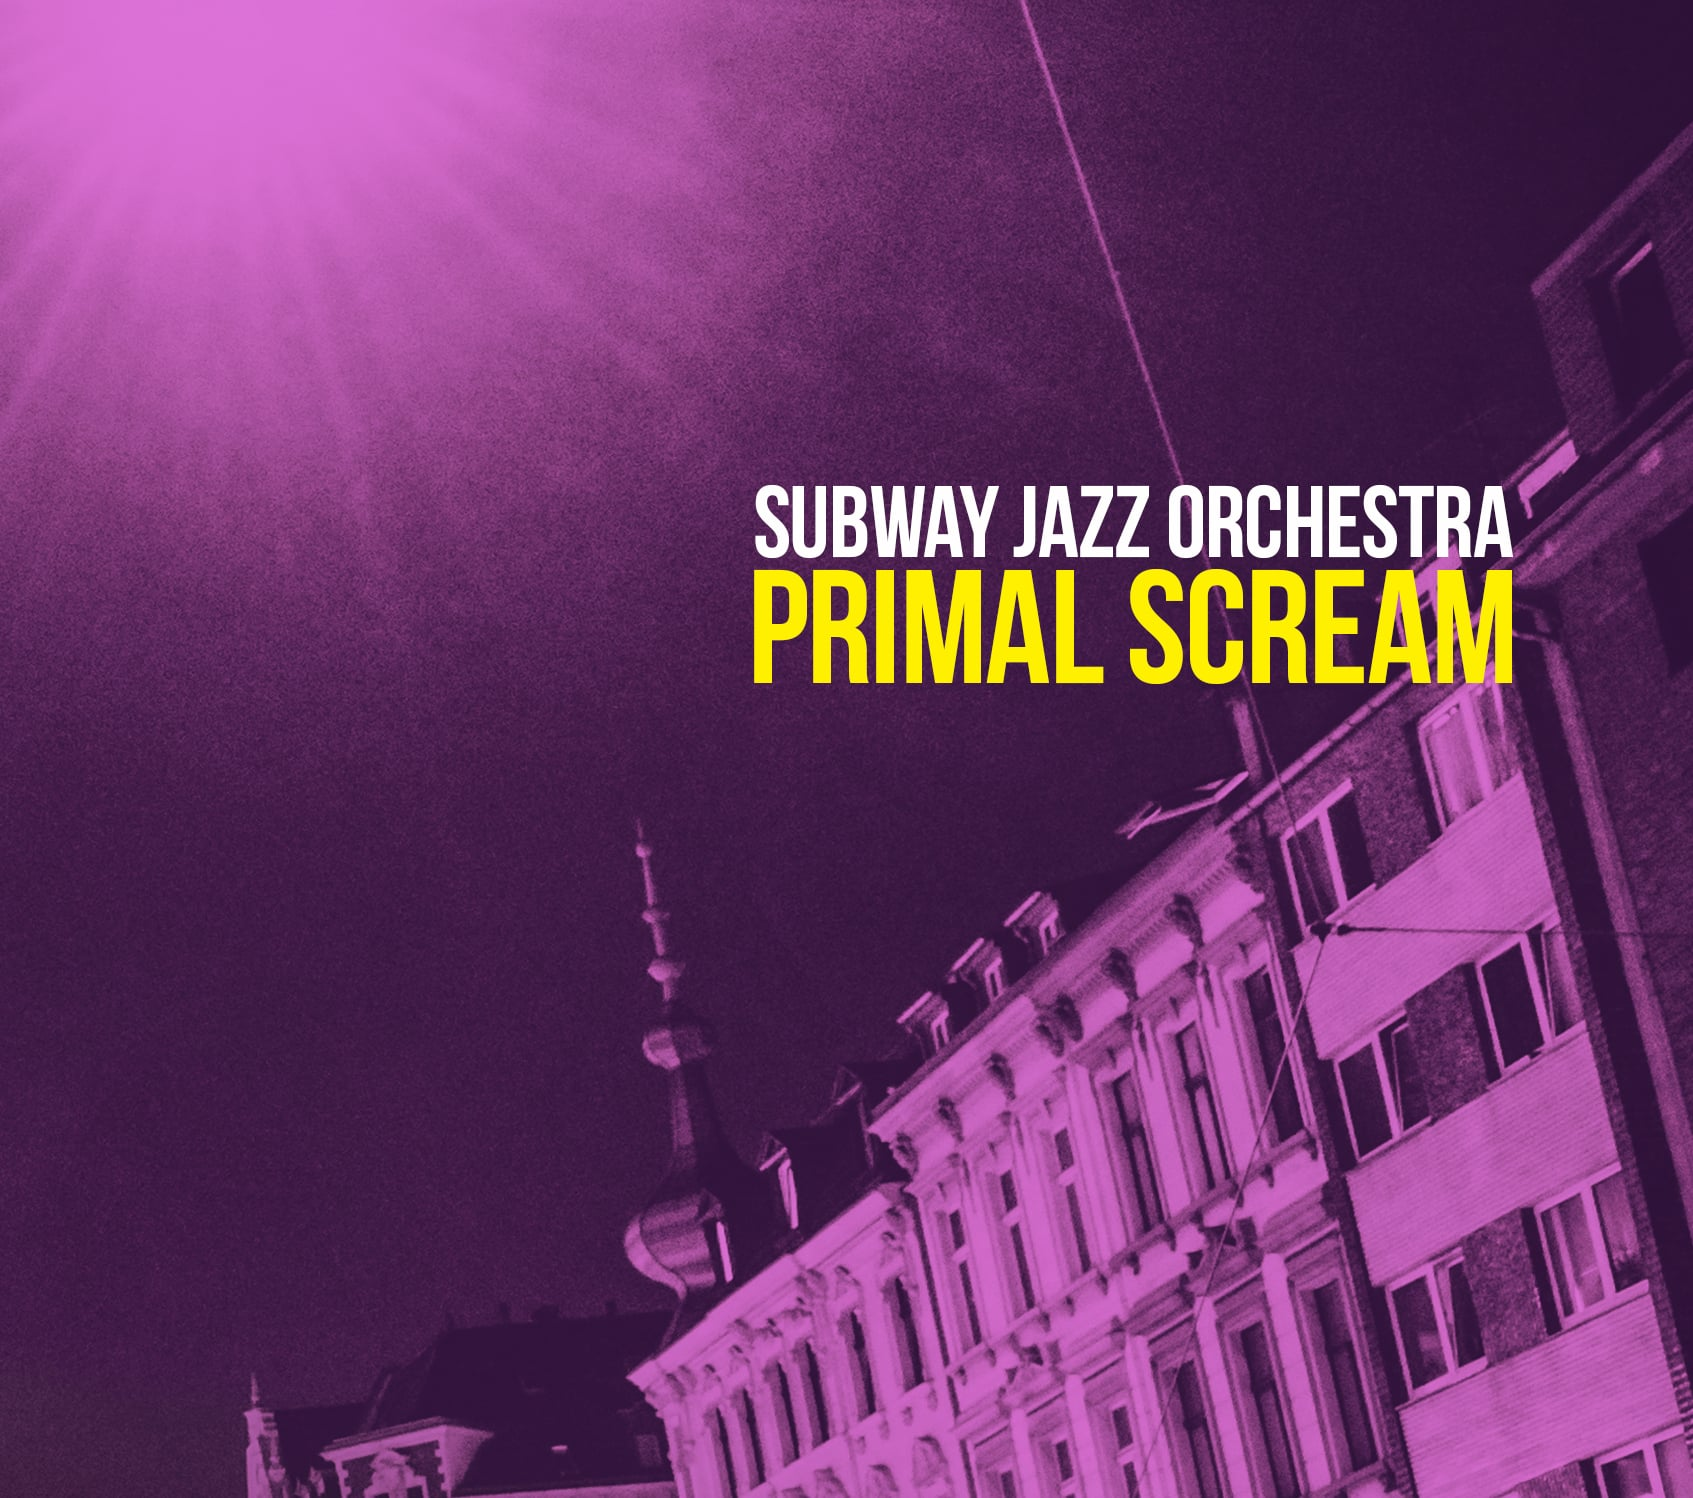 Subway_Jazz_Orchestra_Primal_Scream